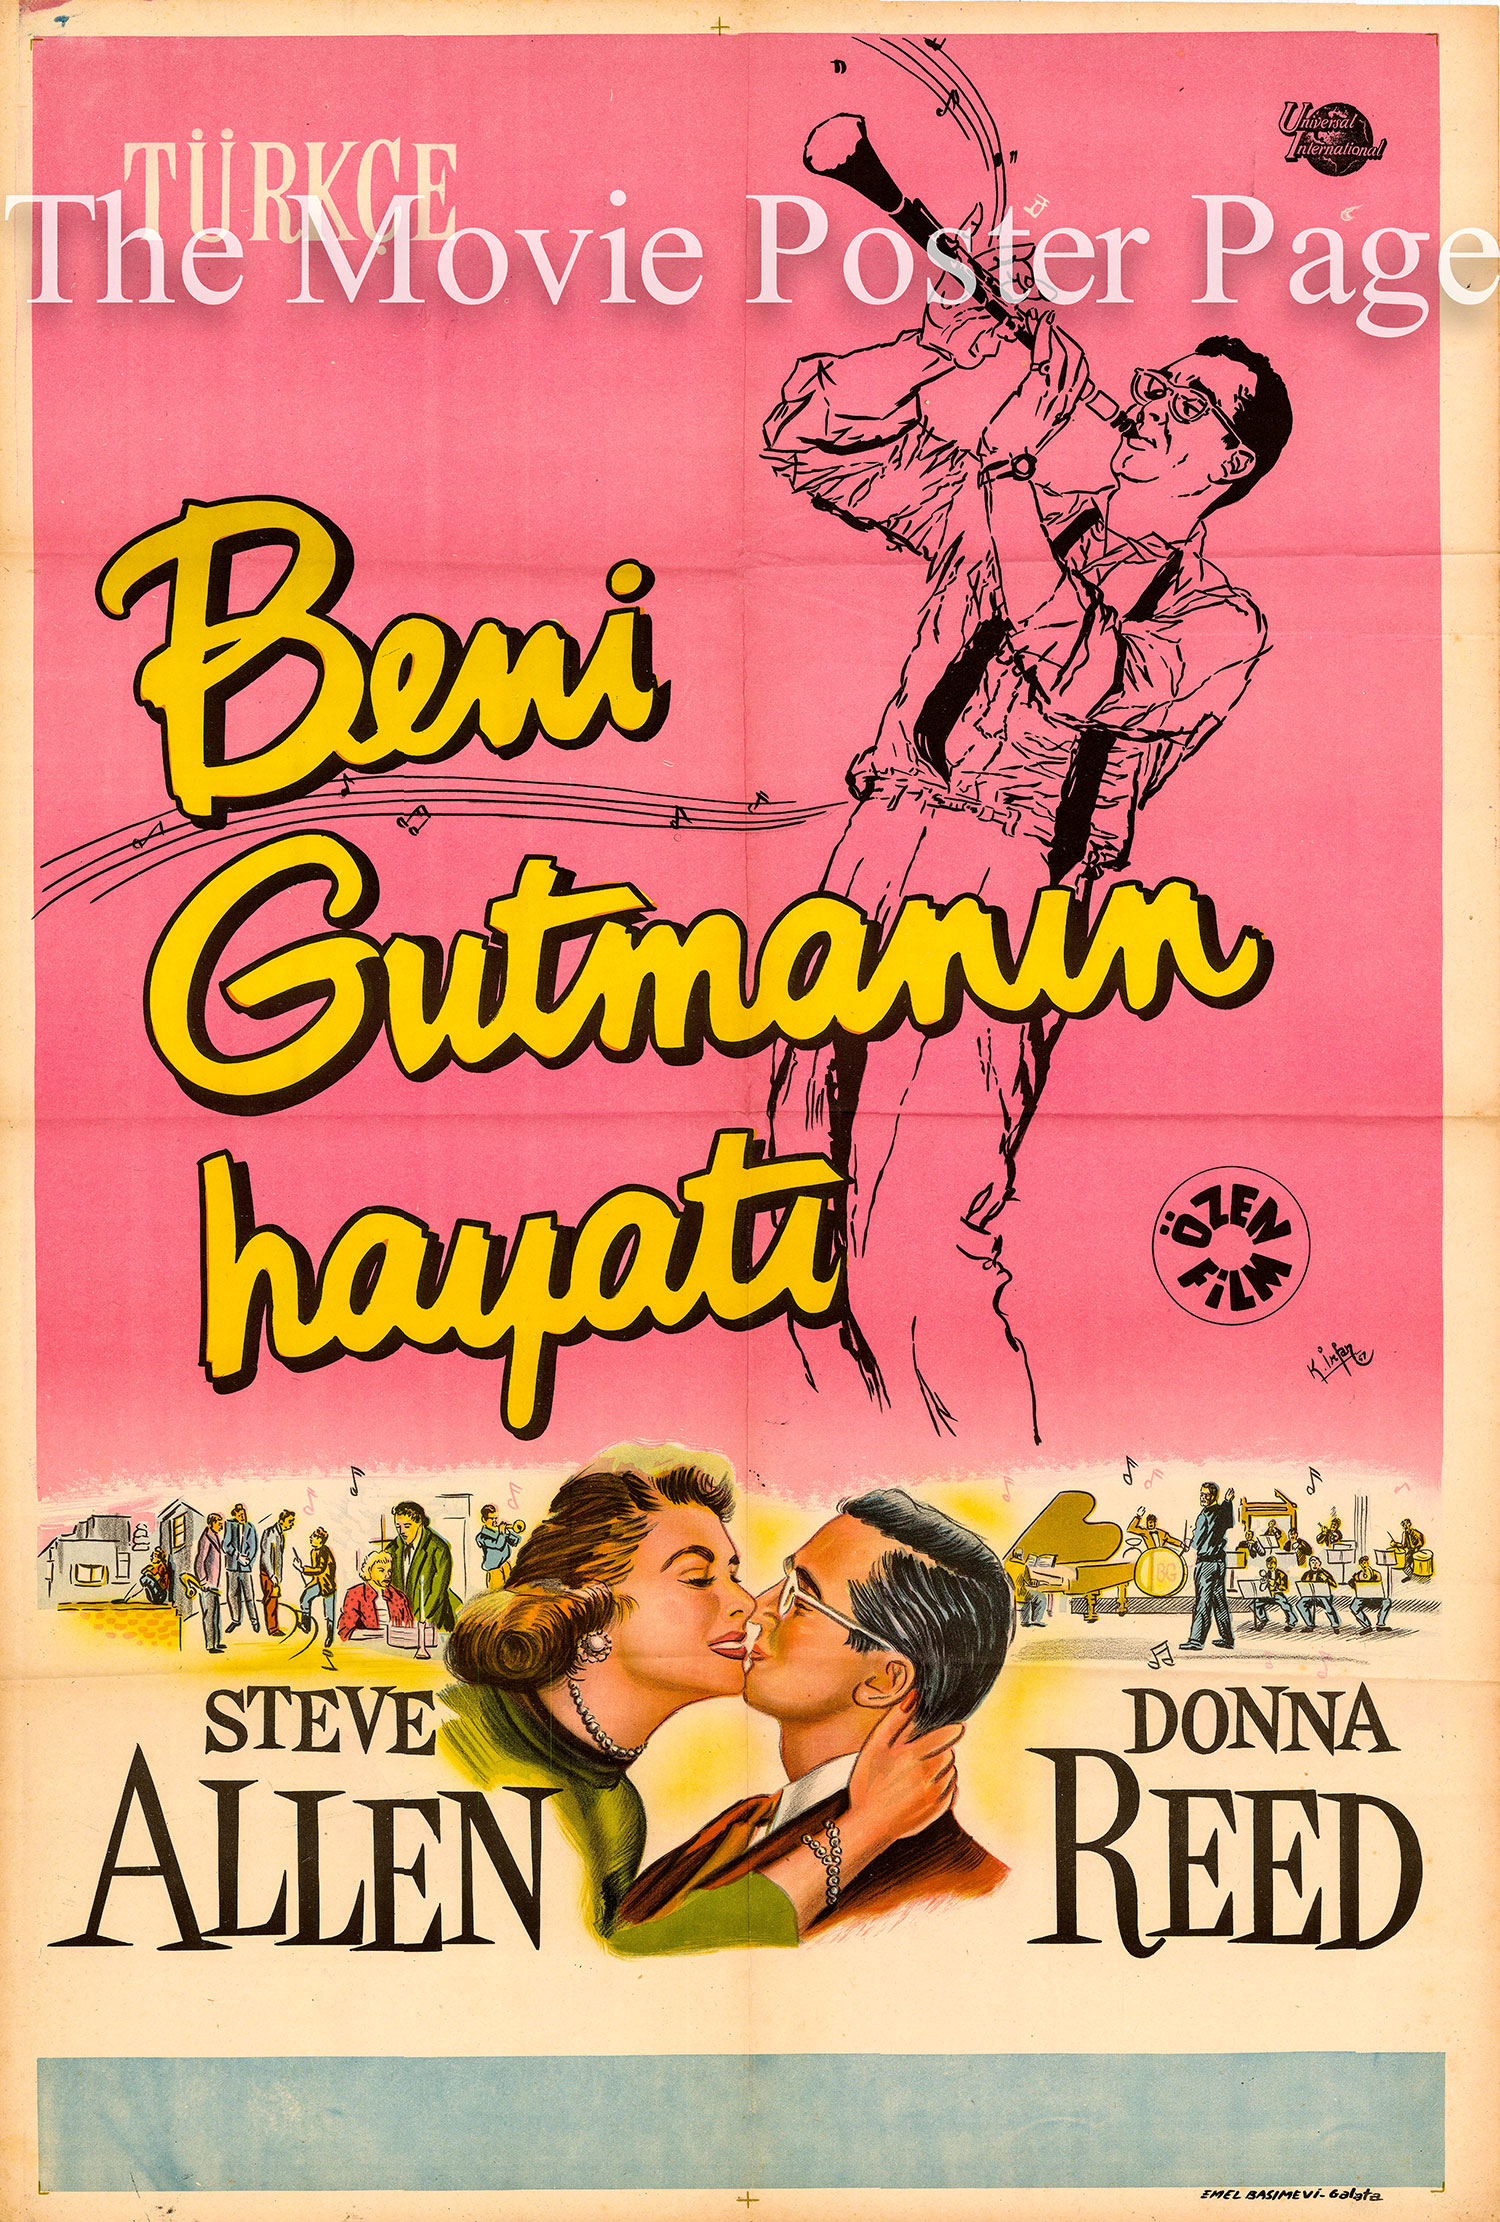 Pictured is a Turkish one-sheet poster for the 1955 Valentine Davies film The Benny Goodman Story starring Steve Allen as Benny Goodman.